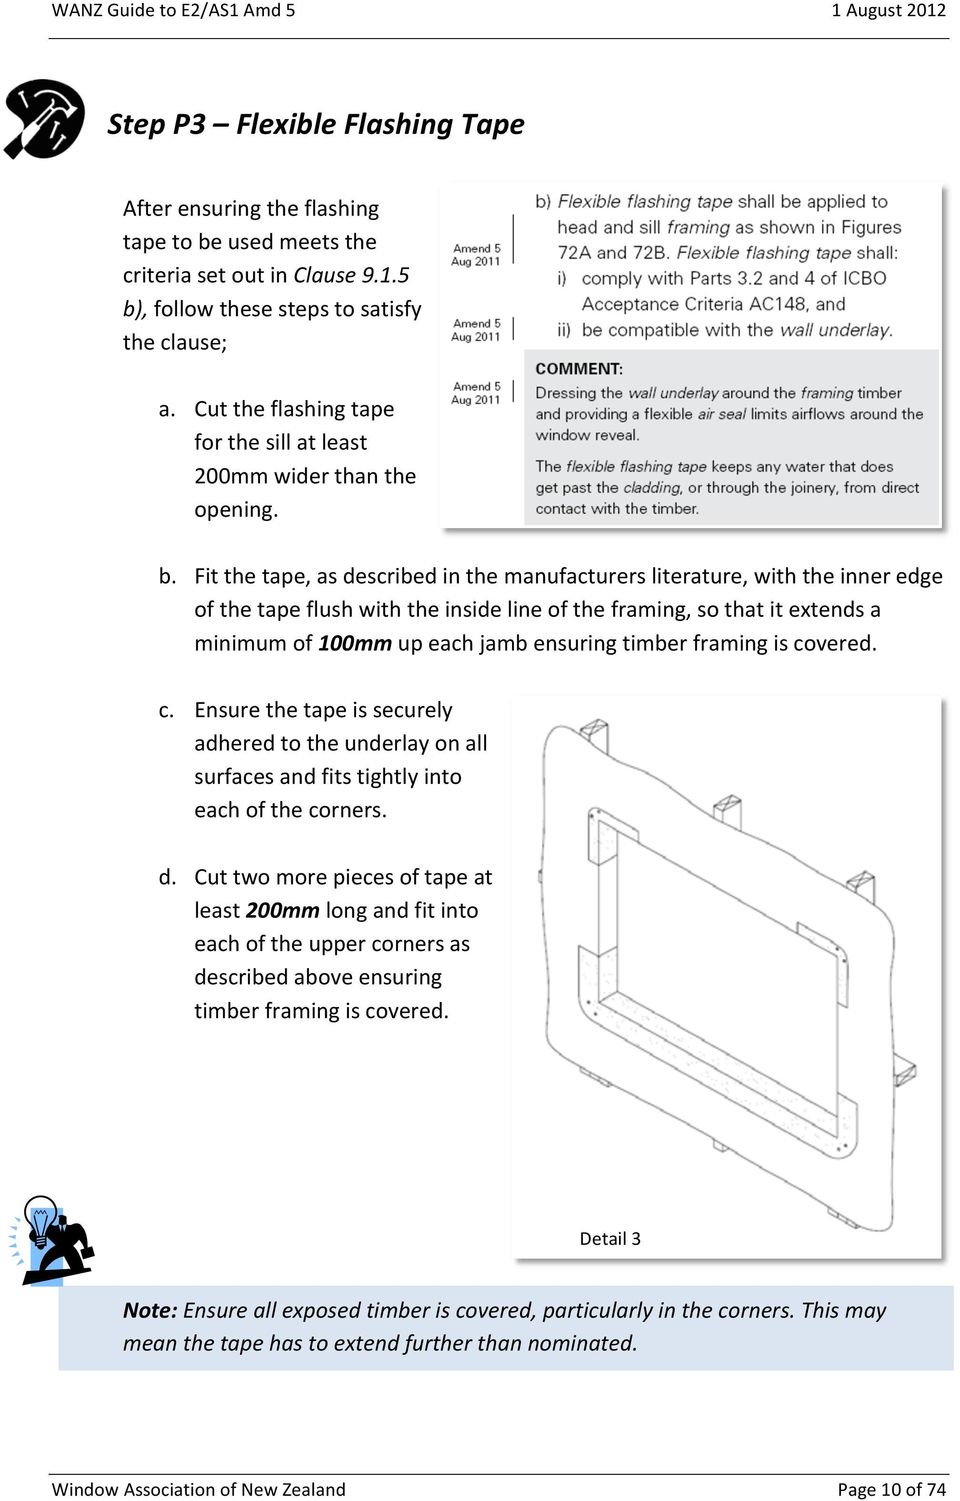 Fit the tape, as described in the manufacturers literature, with the inner edge of the tape flush with the inside line of the framing, so that it extends a minimum of 100mm up each jamb ensuring